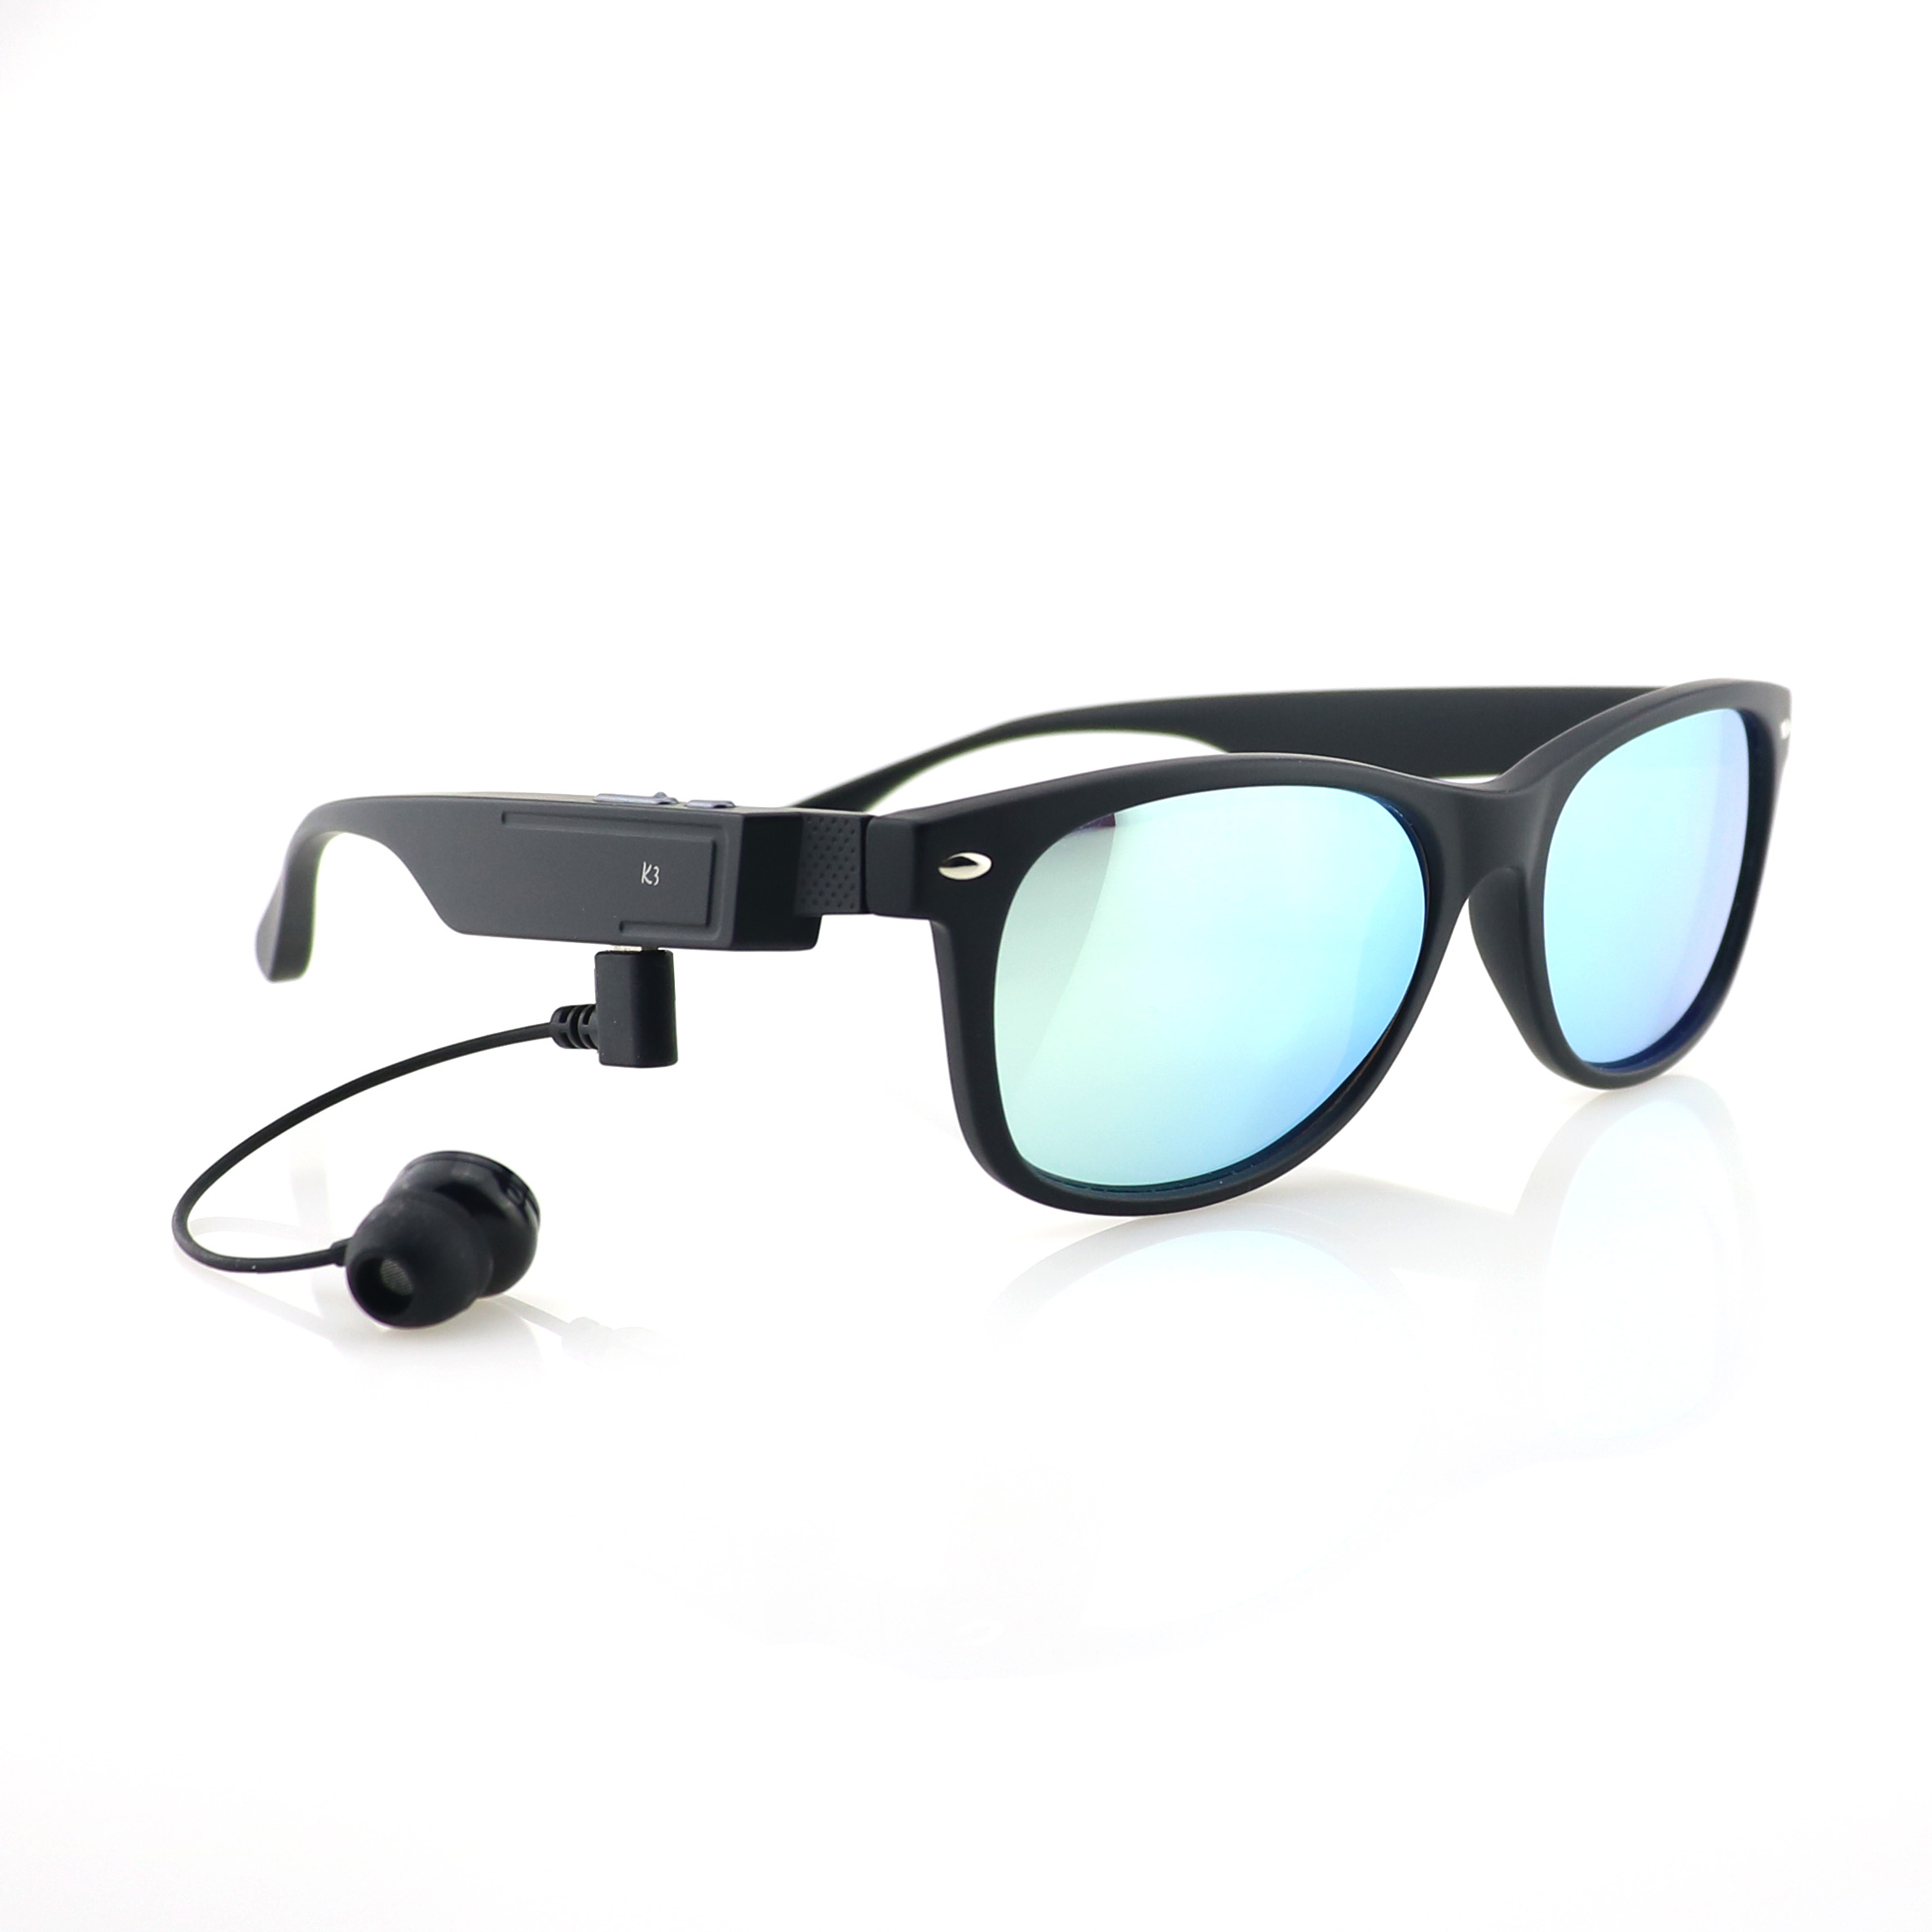 2017 Brands OEM glasses UV400 Polarized sport <strong>mp3</strong> bluetooth sunglasses